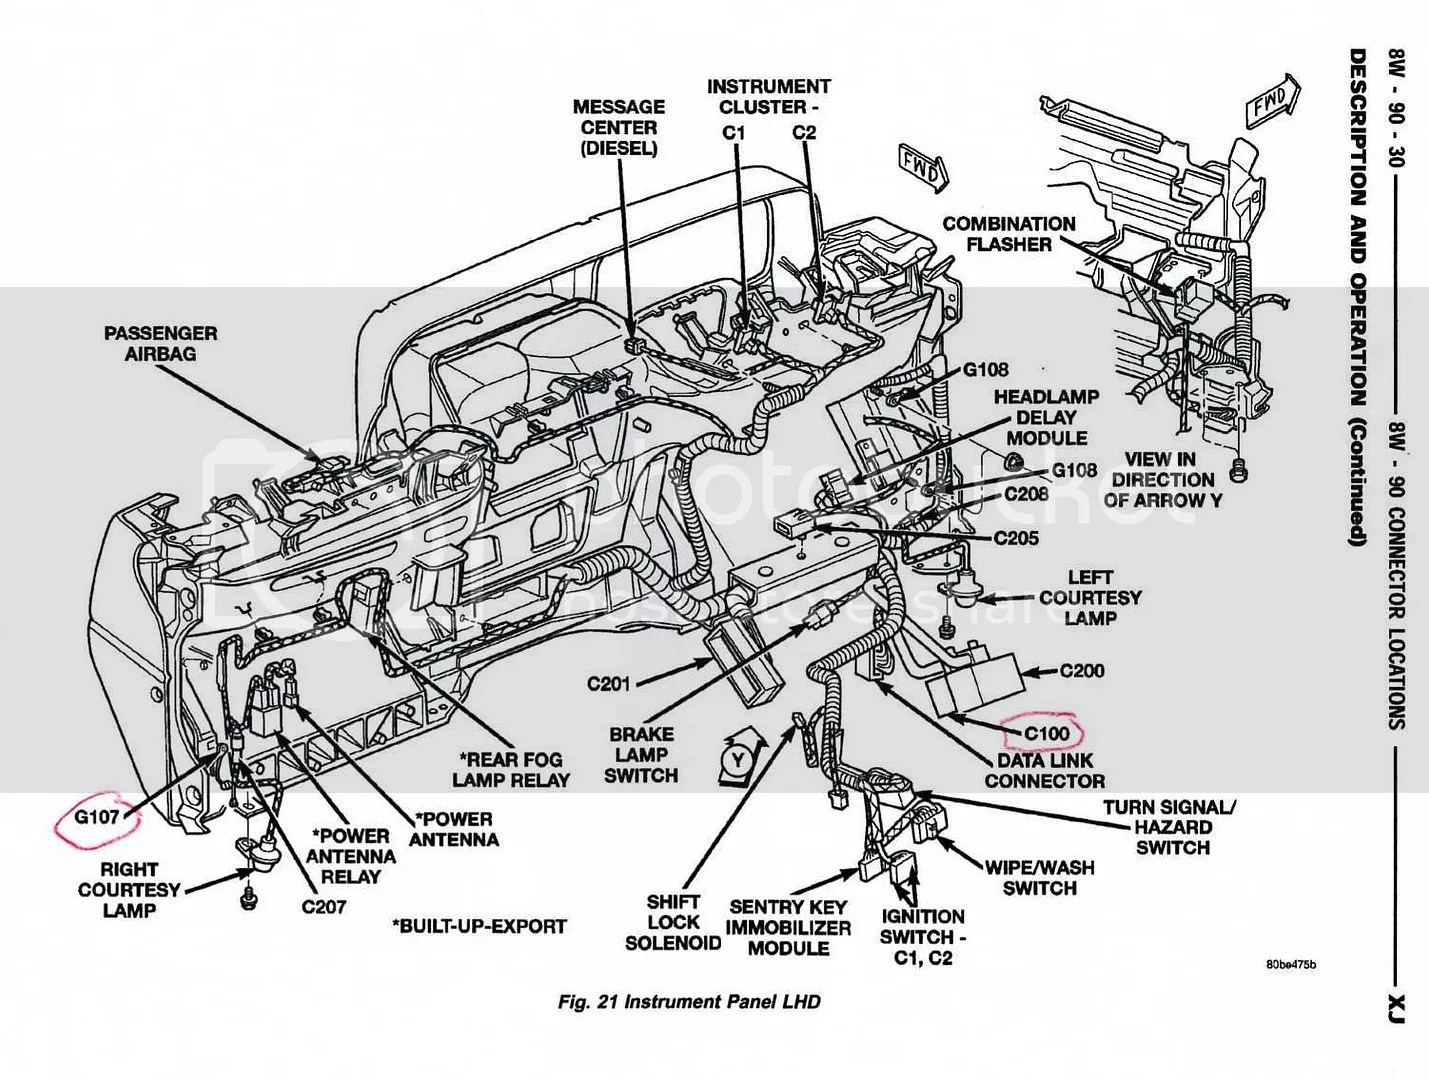 hight resolution of 2011 jeep wrangler interior diagram wiring diagrams 2011 jeep wrangler fuse box wiring diagram go 2011